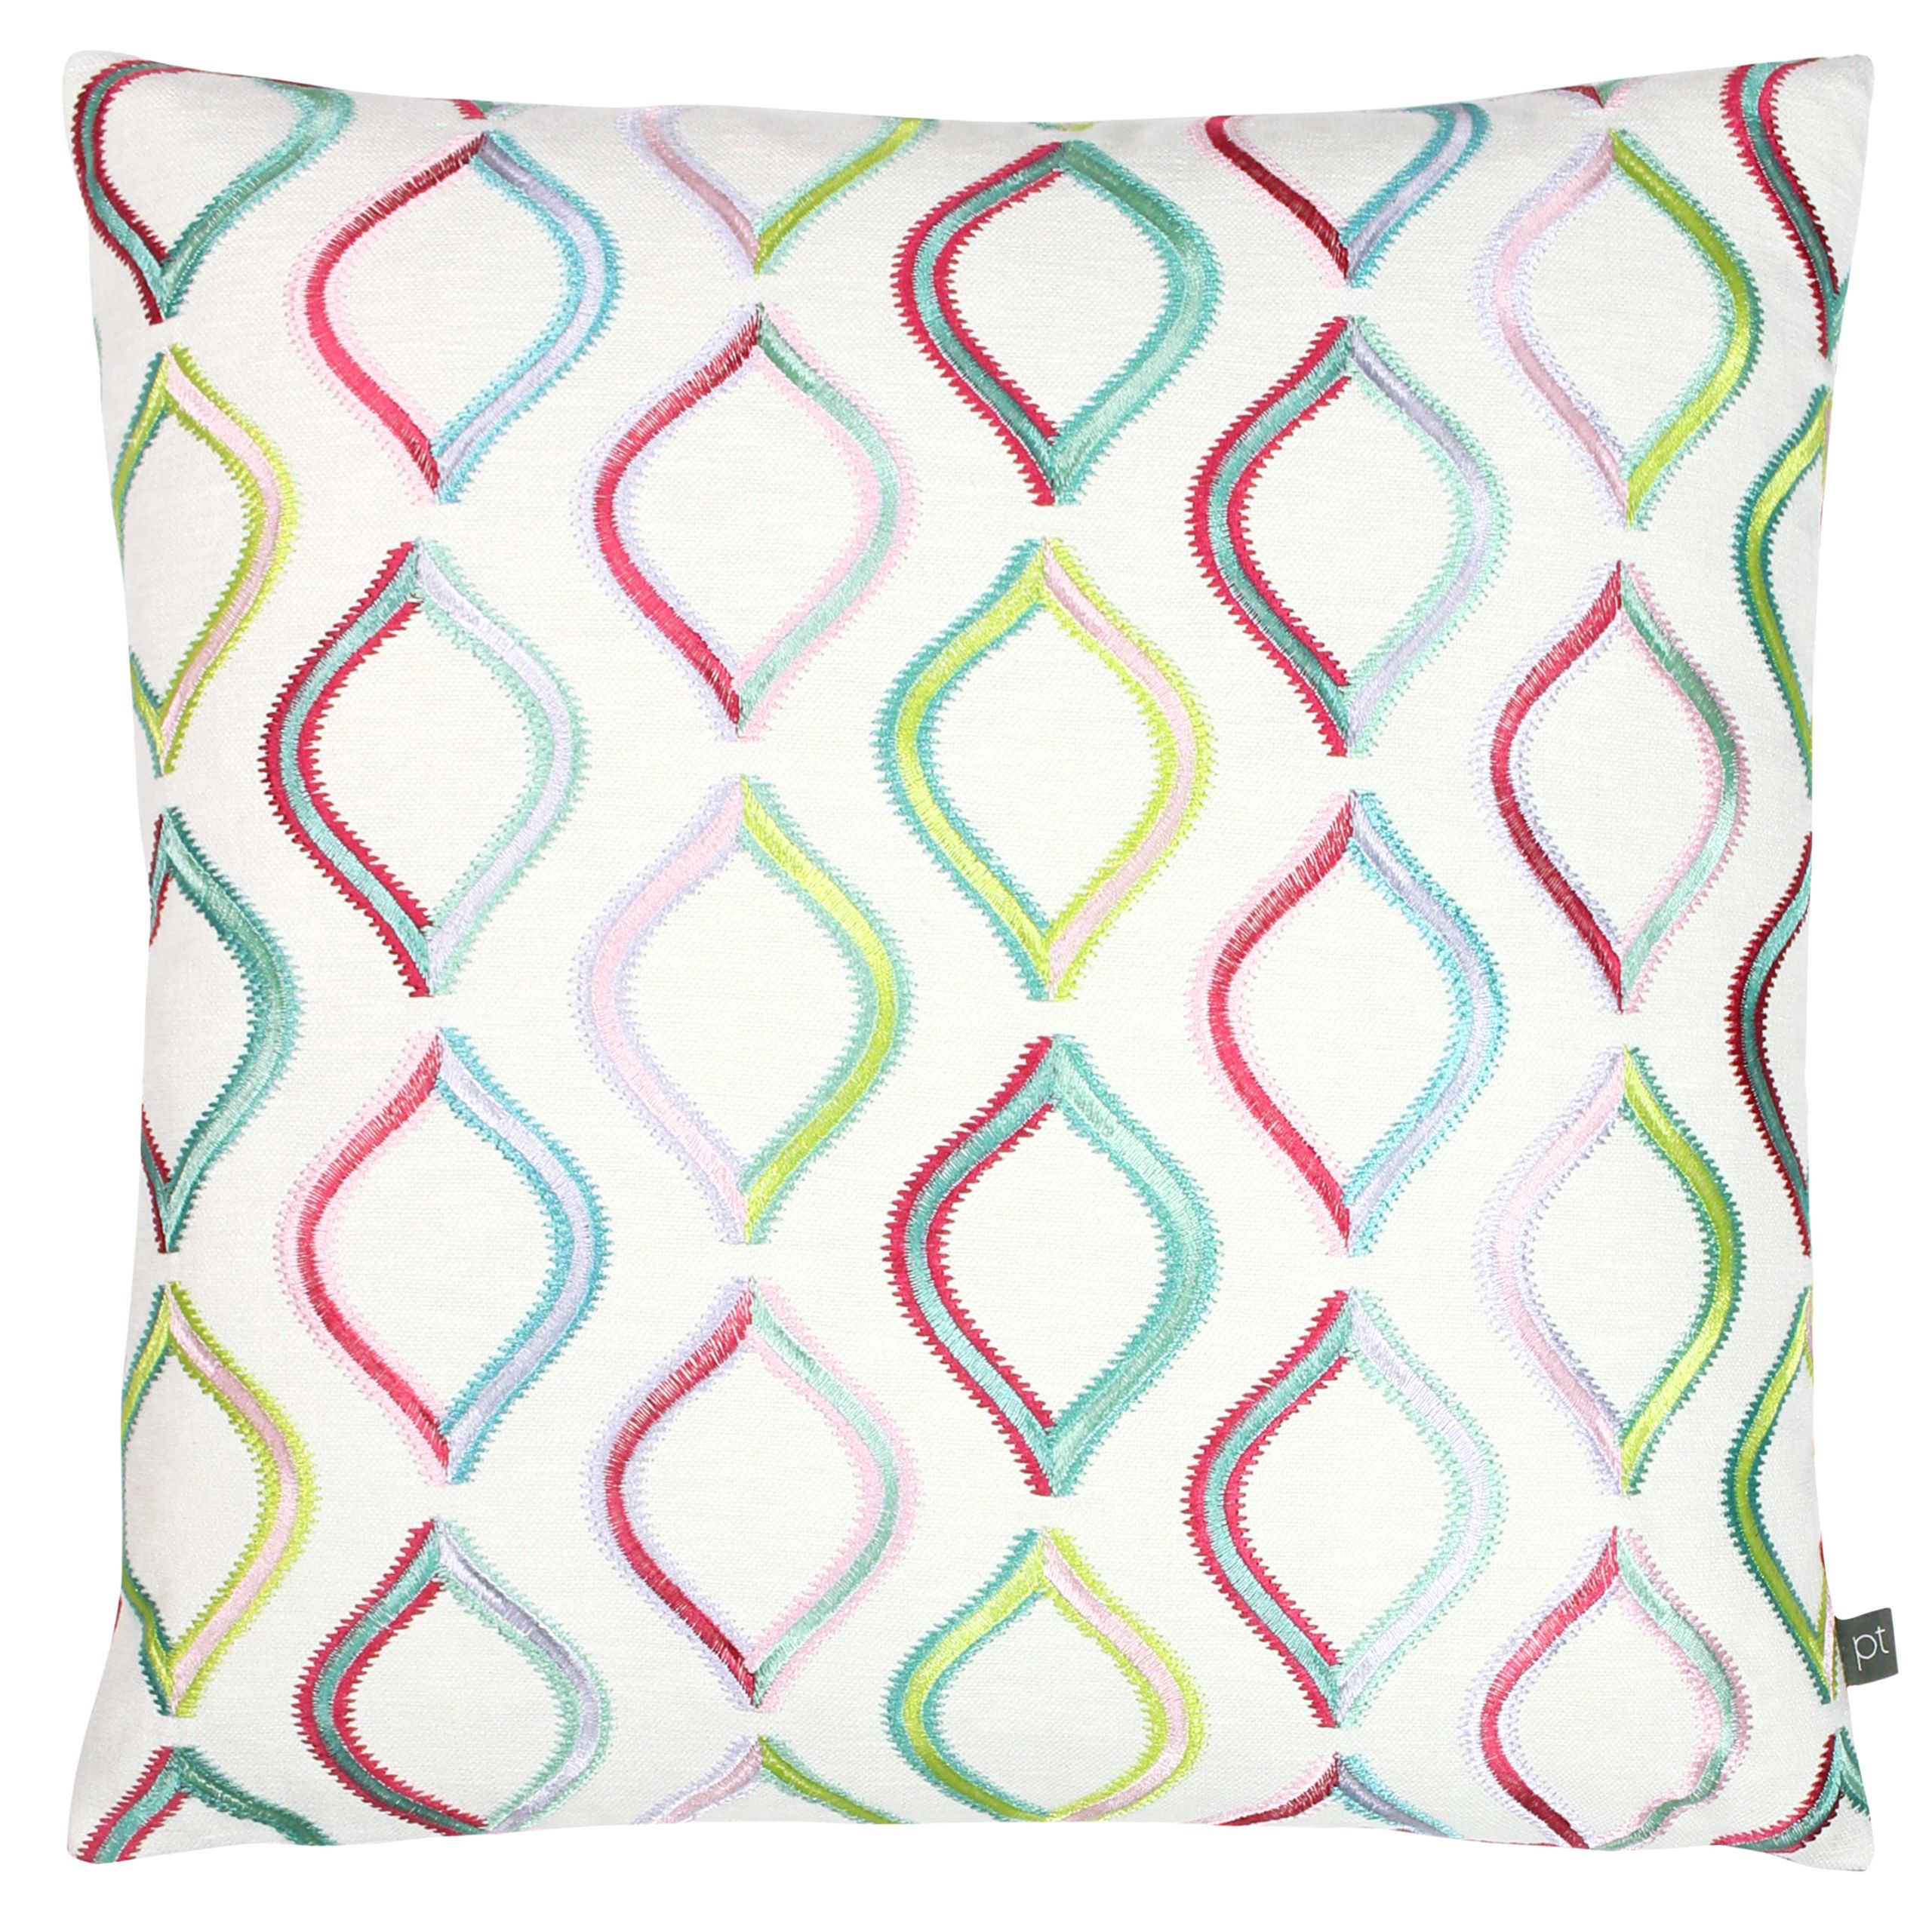 Prestigious Textiles Spinning Top Polyester Filled Cushion Cover, Polyester, Acrylic, Rainbow